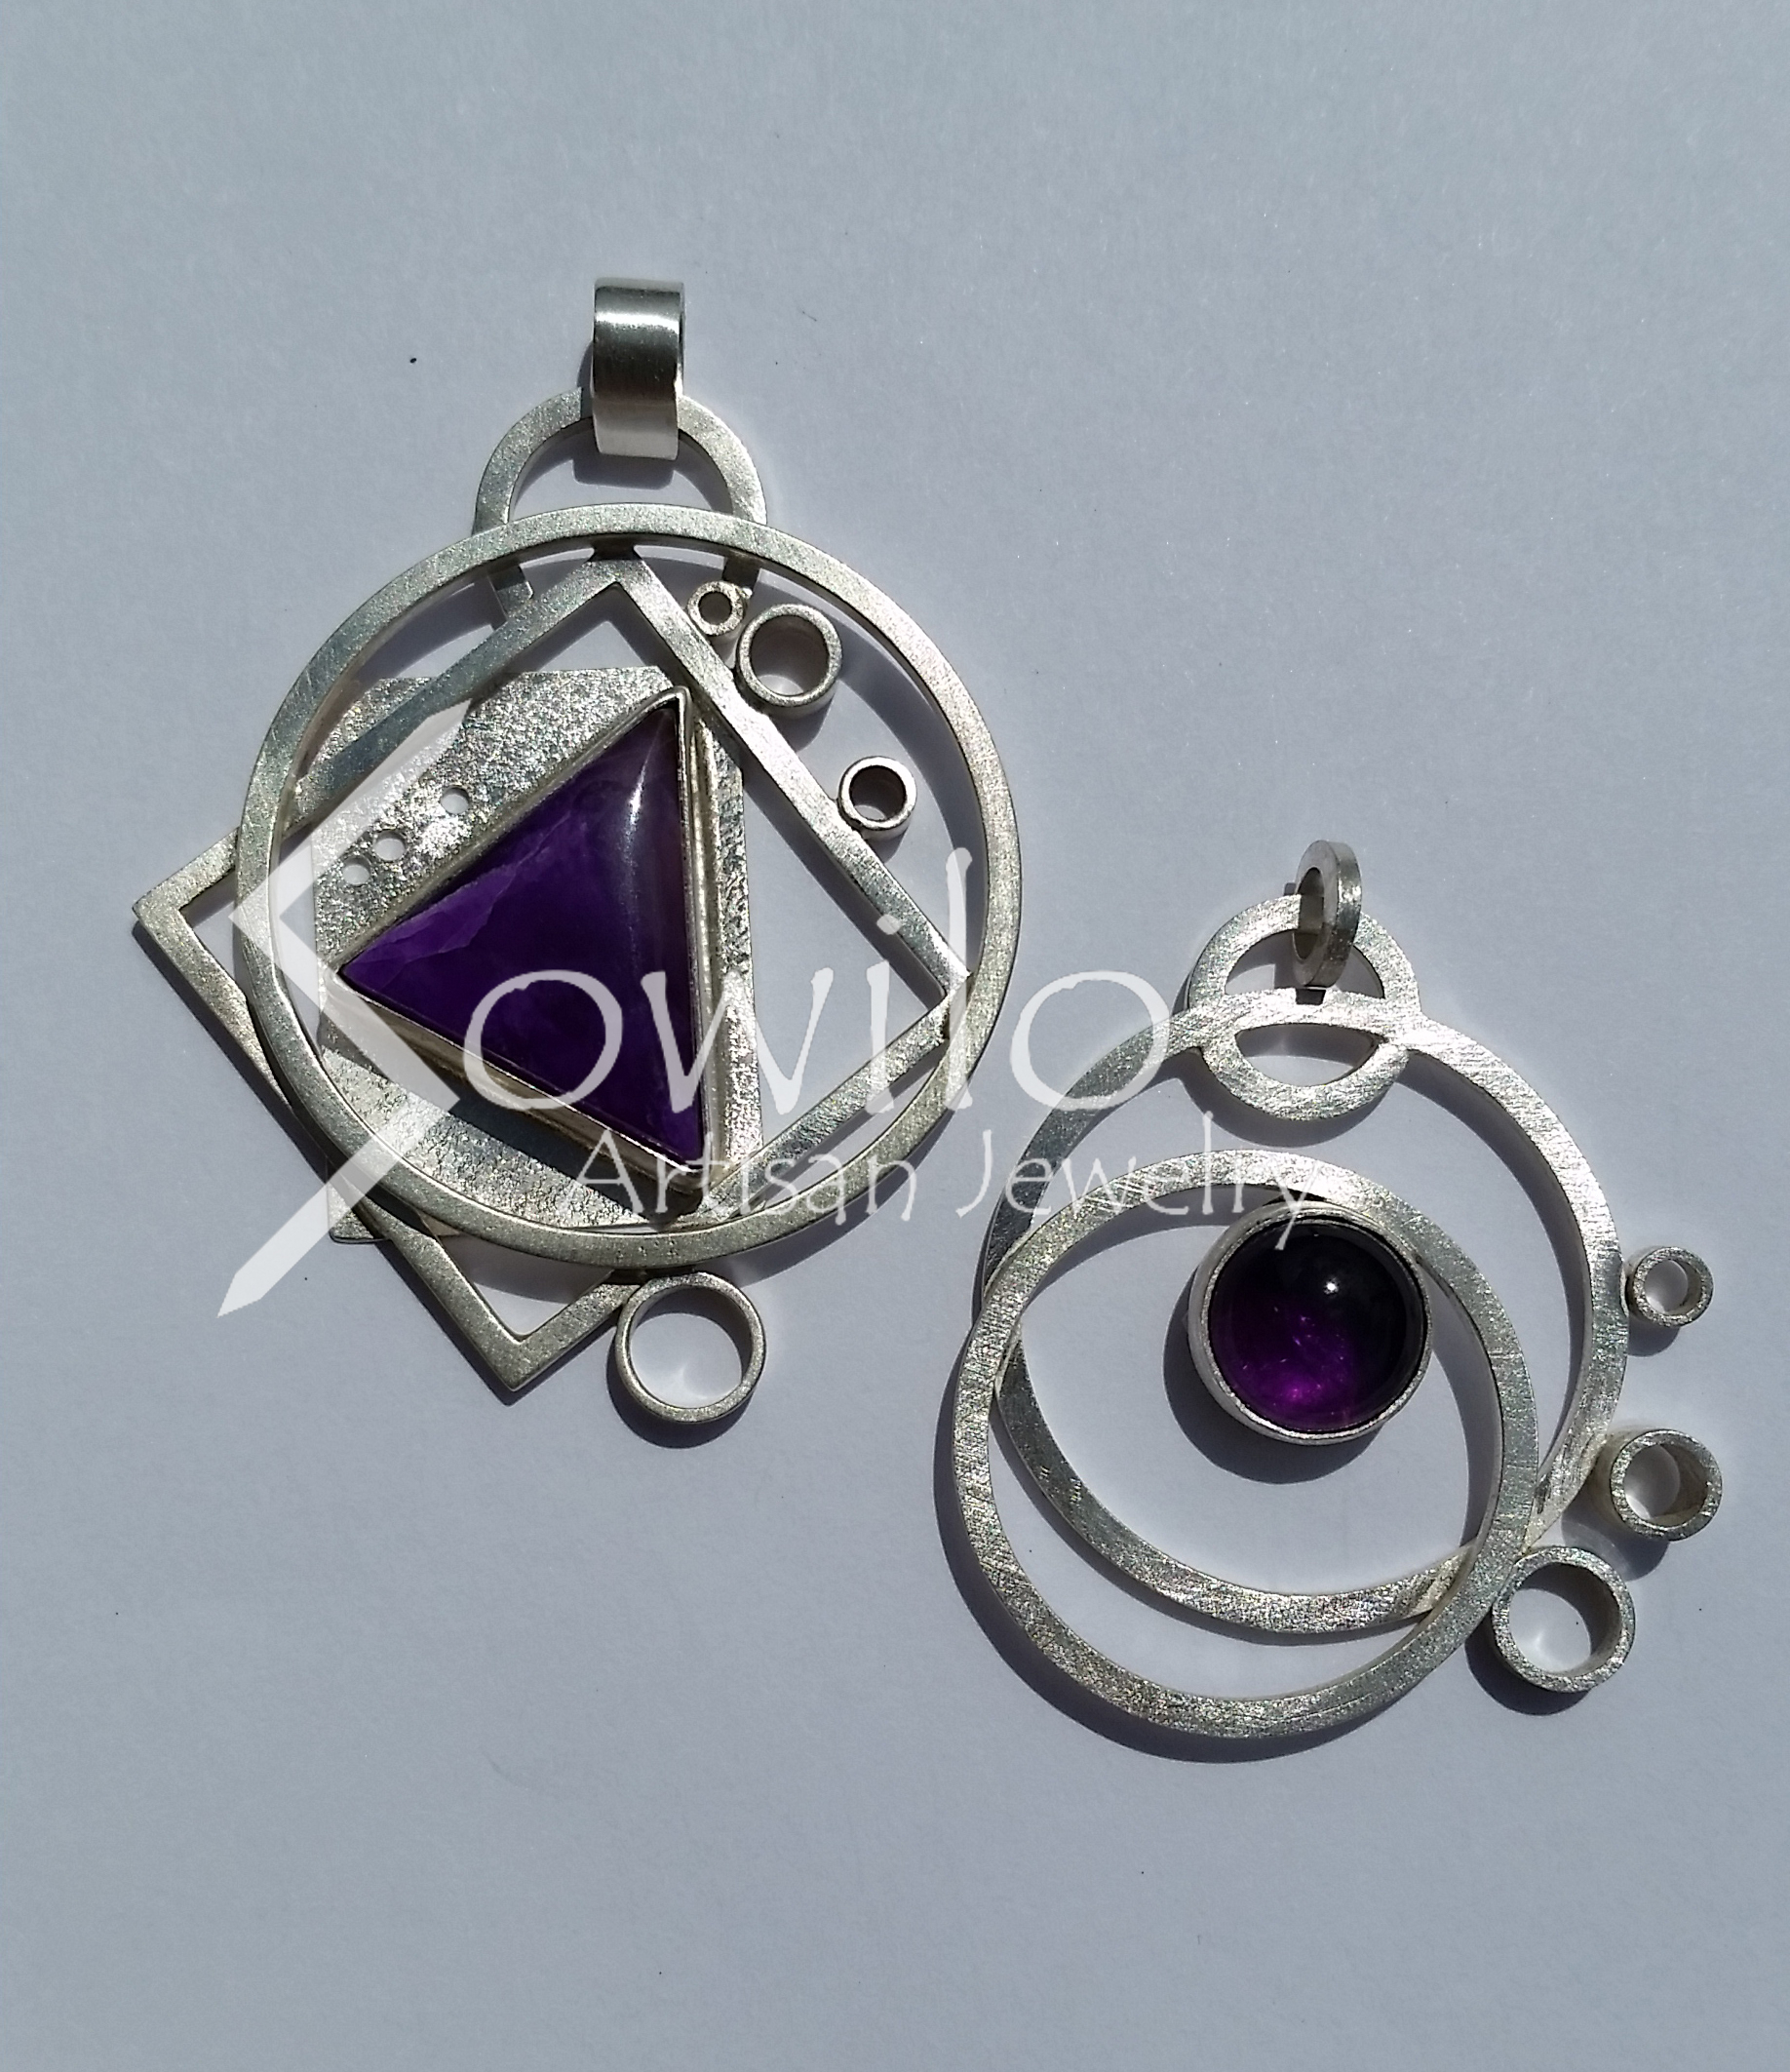 Sowilo Artisan Jewelry image 10